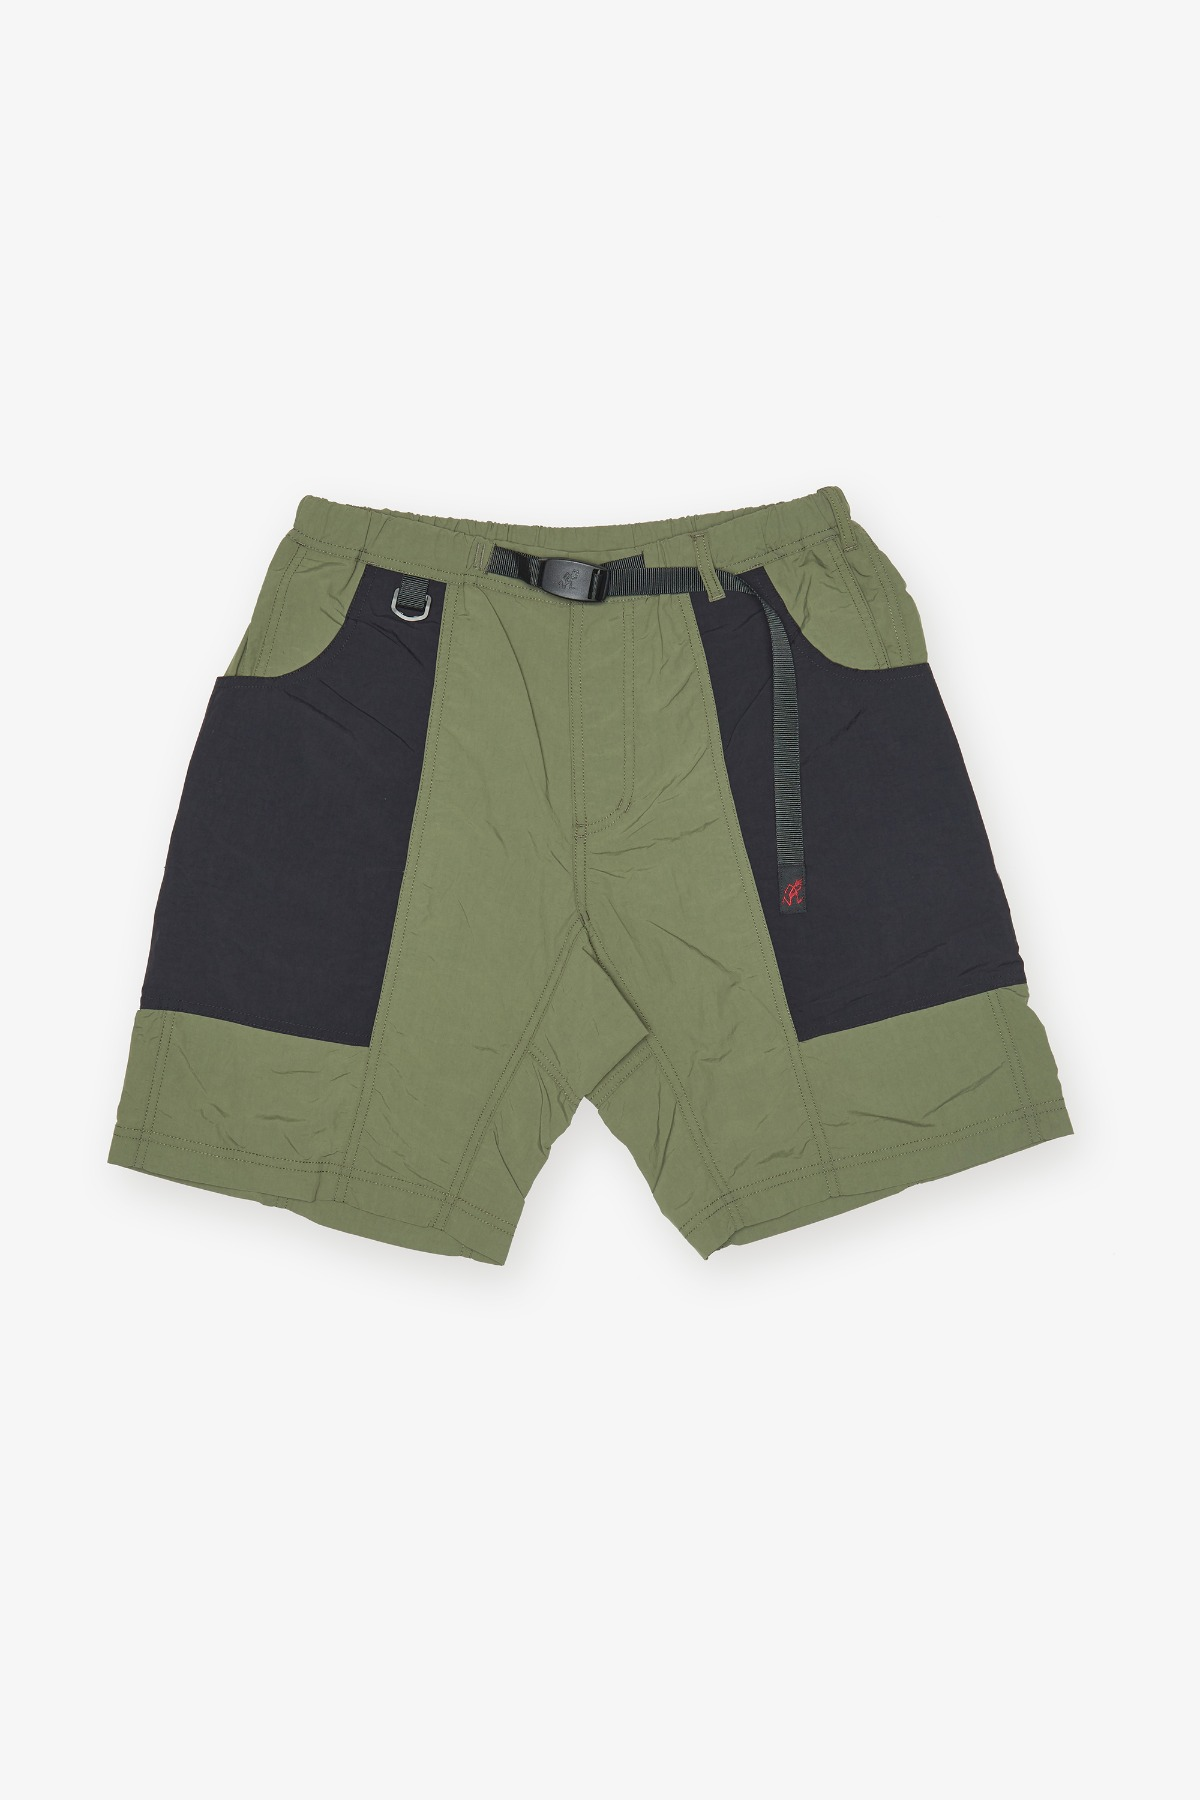 SHELL GEAR SHORTS OLIVE x BLACK